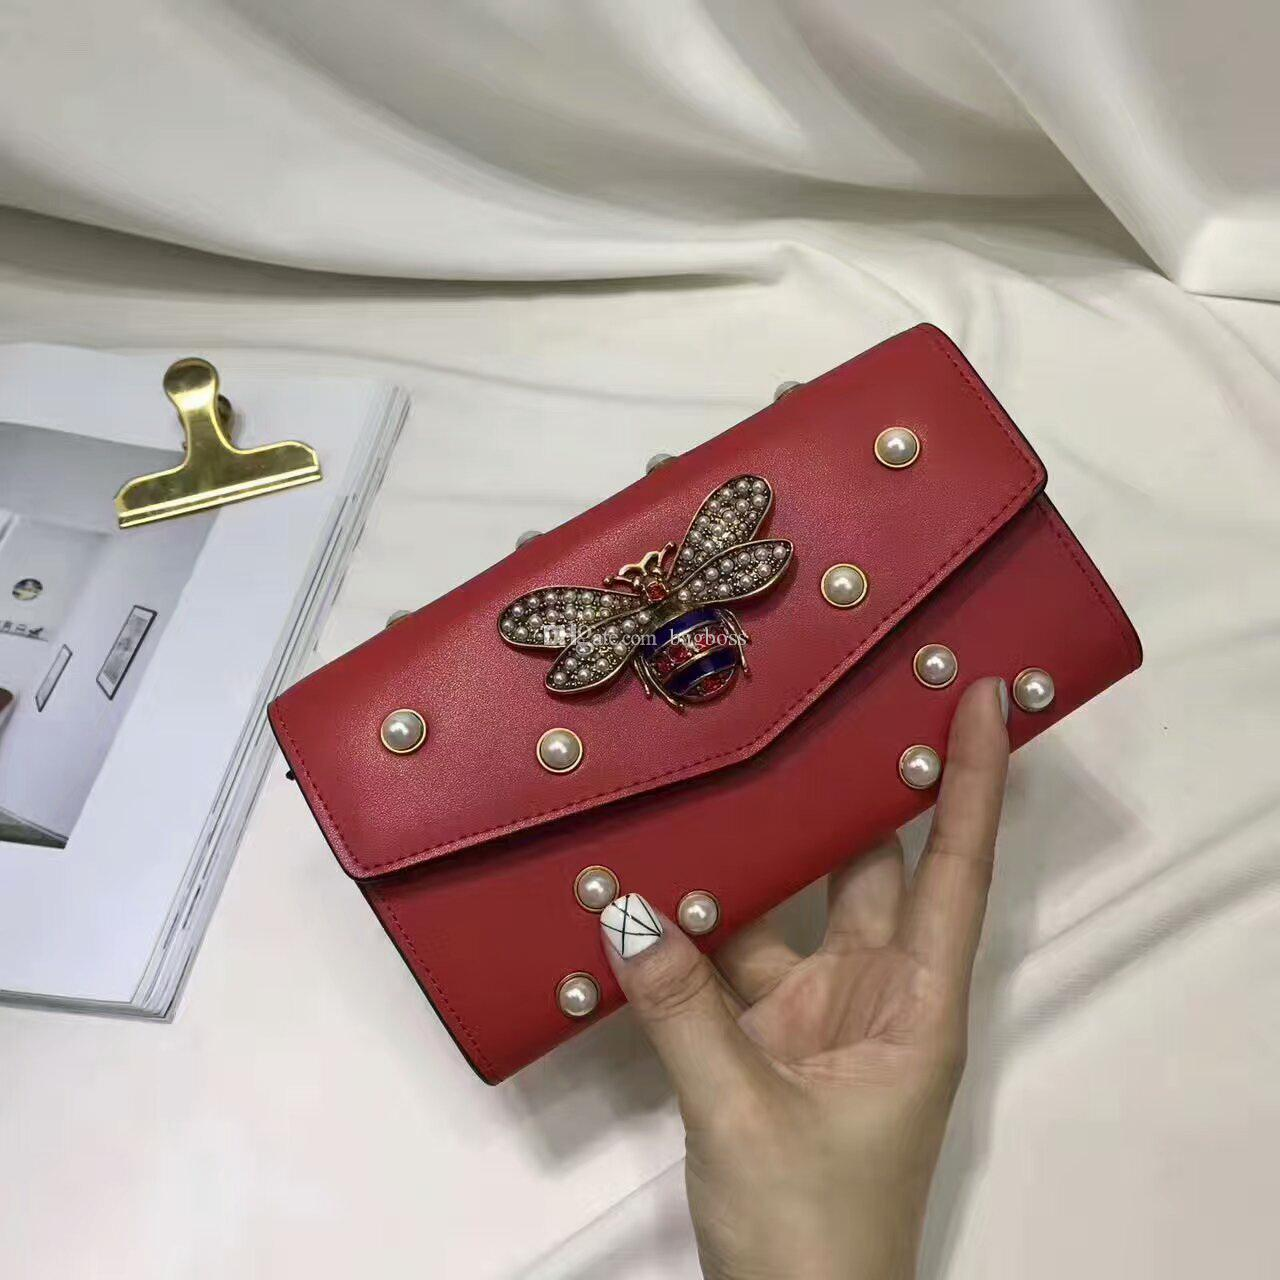 048e1f8a7e7c Fashion Long Style Designer Clutch Women Purse Brand Leather Bee Wallet  Bifold Credit Card Holders Wallets With Box Dustbag GUU 476083 Girl Wallets  ...